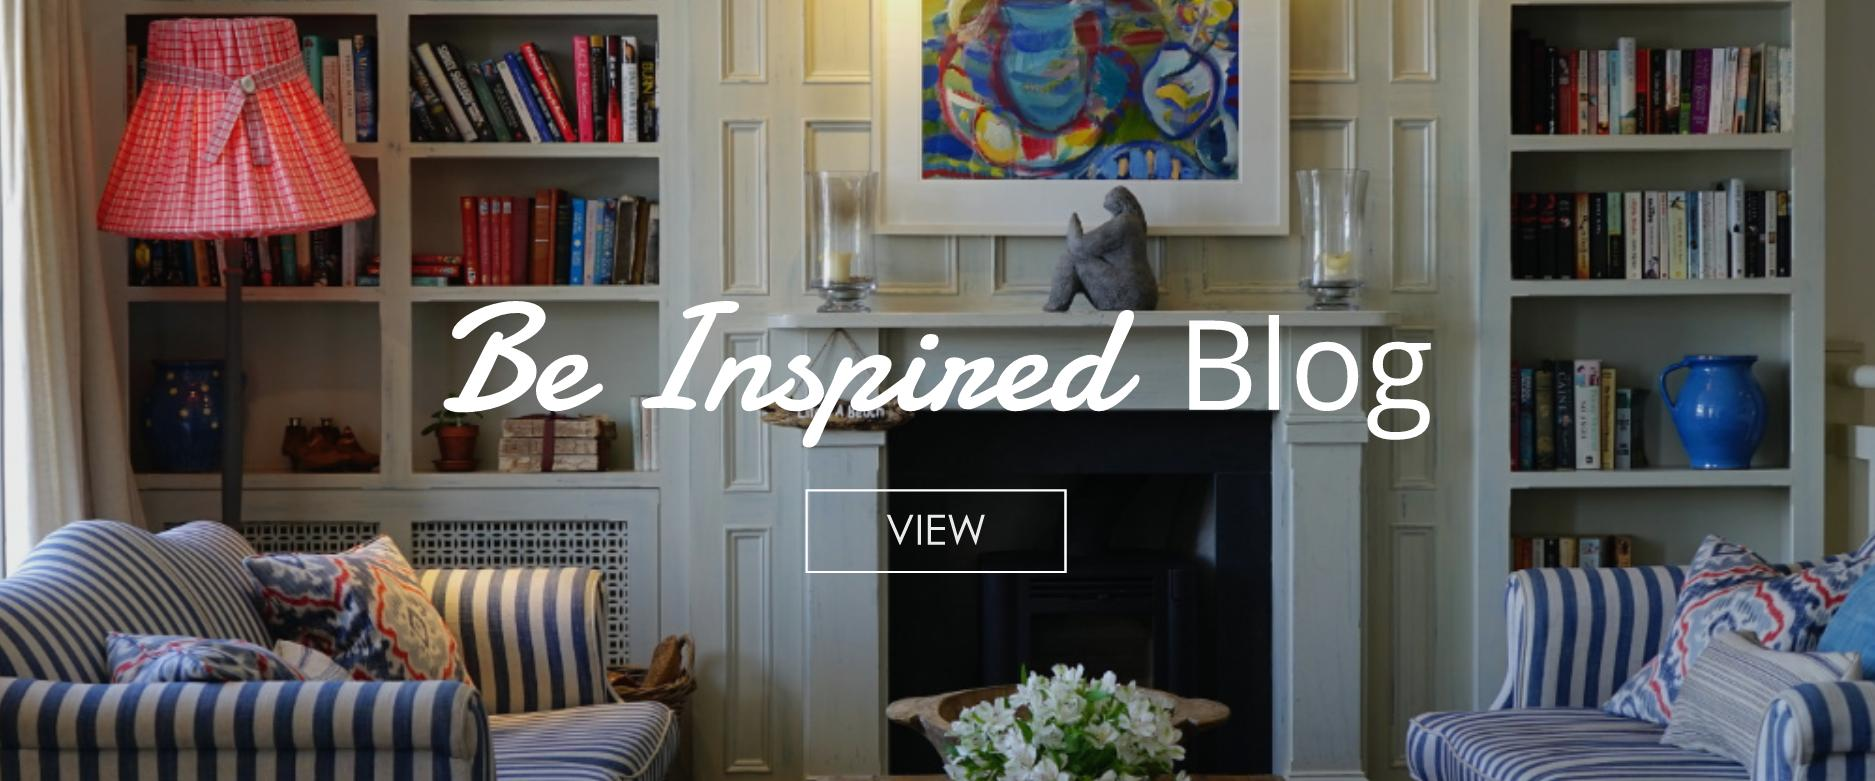 Be Inspired Blog